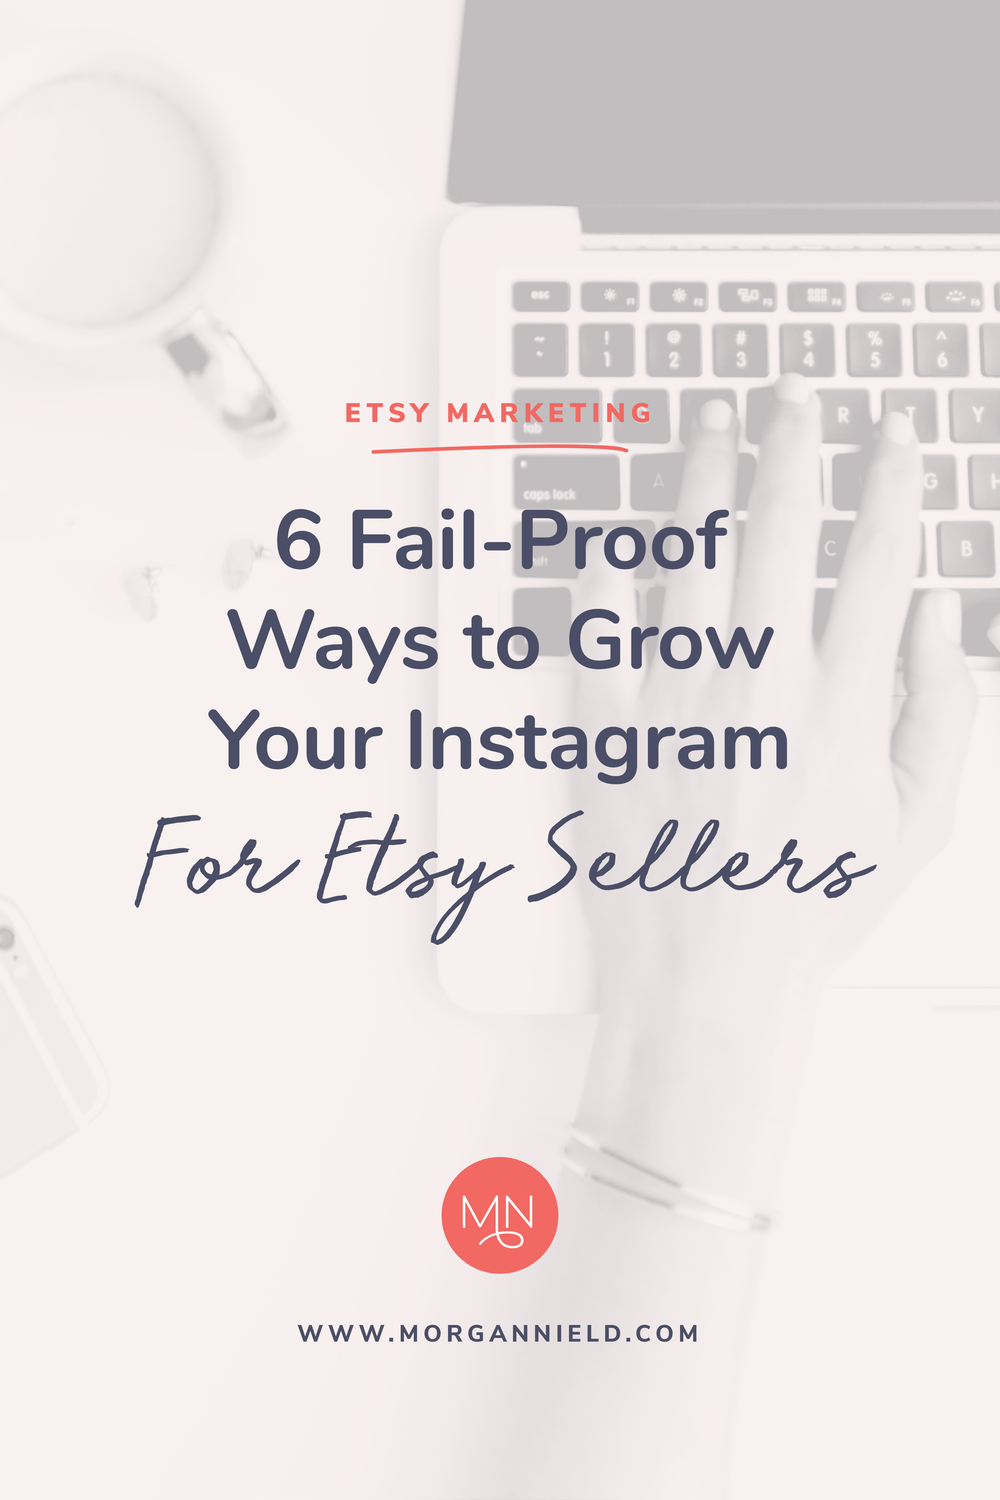 6 FAIL-PROOF WAYS TO GROW YOUR INSTAGRAM AS AN ETSY SELLER | Instagram is an AMAZING tool to utilize if you sell on Etsy, but gaining that initial following can be tough sledding. On the blog I'm sharing 6 of my favorite ways to grow your Instagram organically and make a few sales along the way! Click through to read my top tips >>